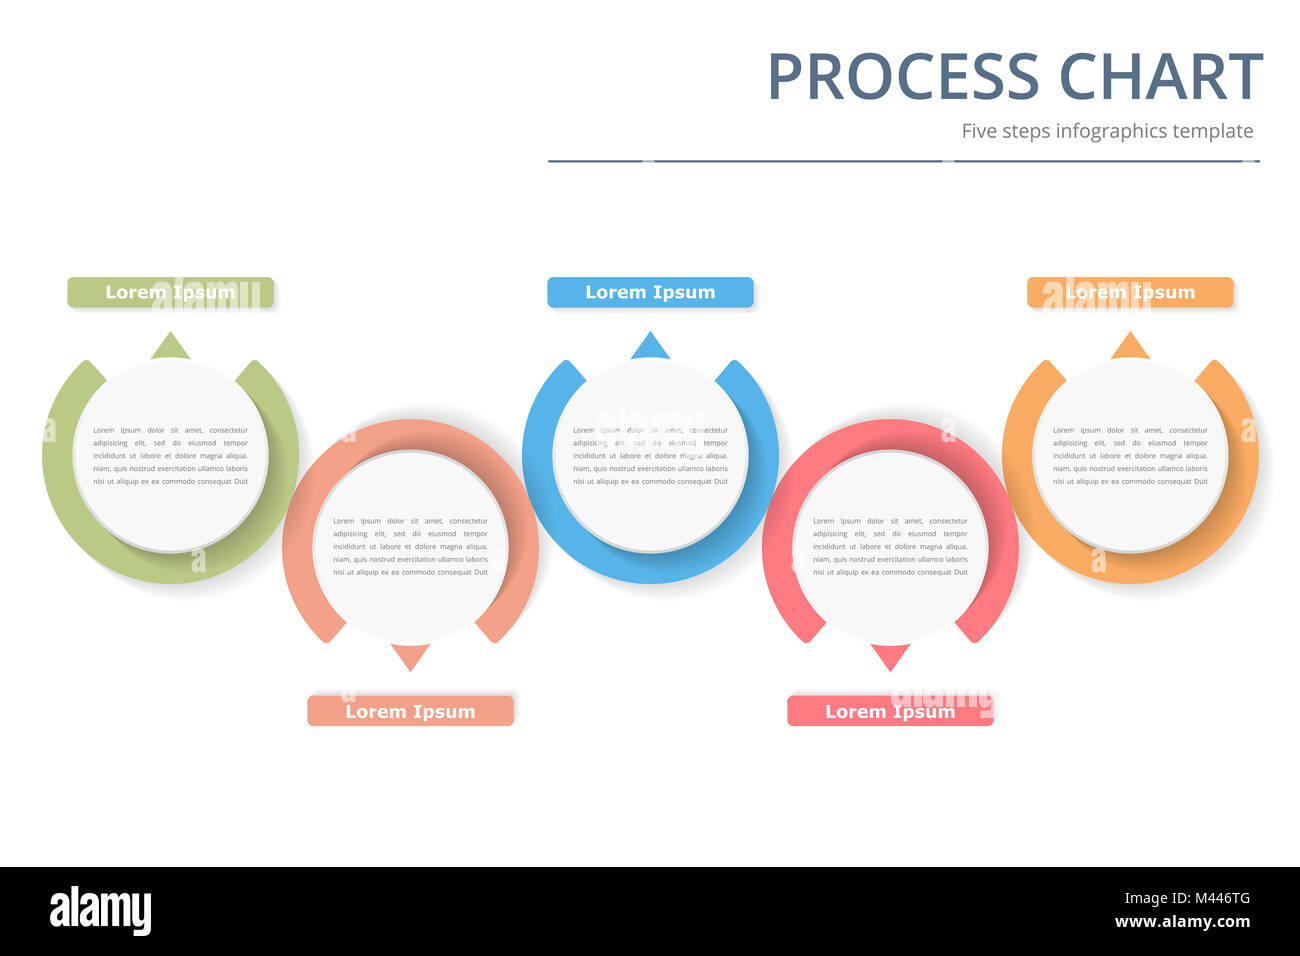 Process Diagram Template With Circles Flowchart Or Workflow With - Workflow process template